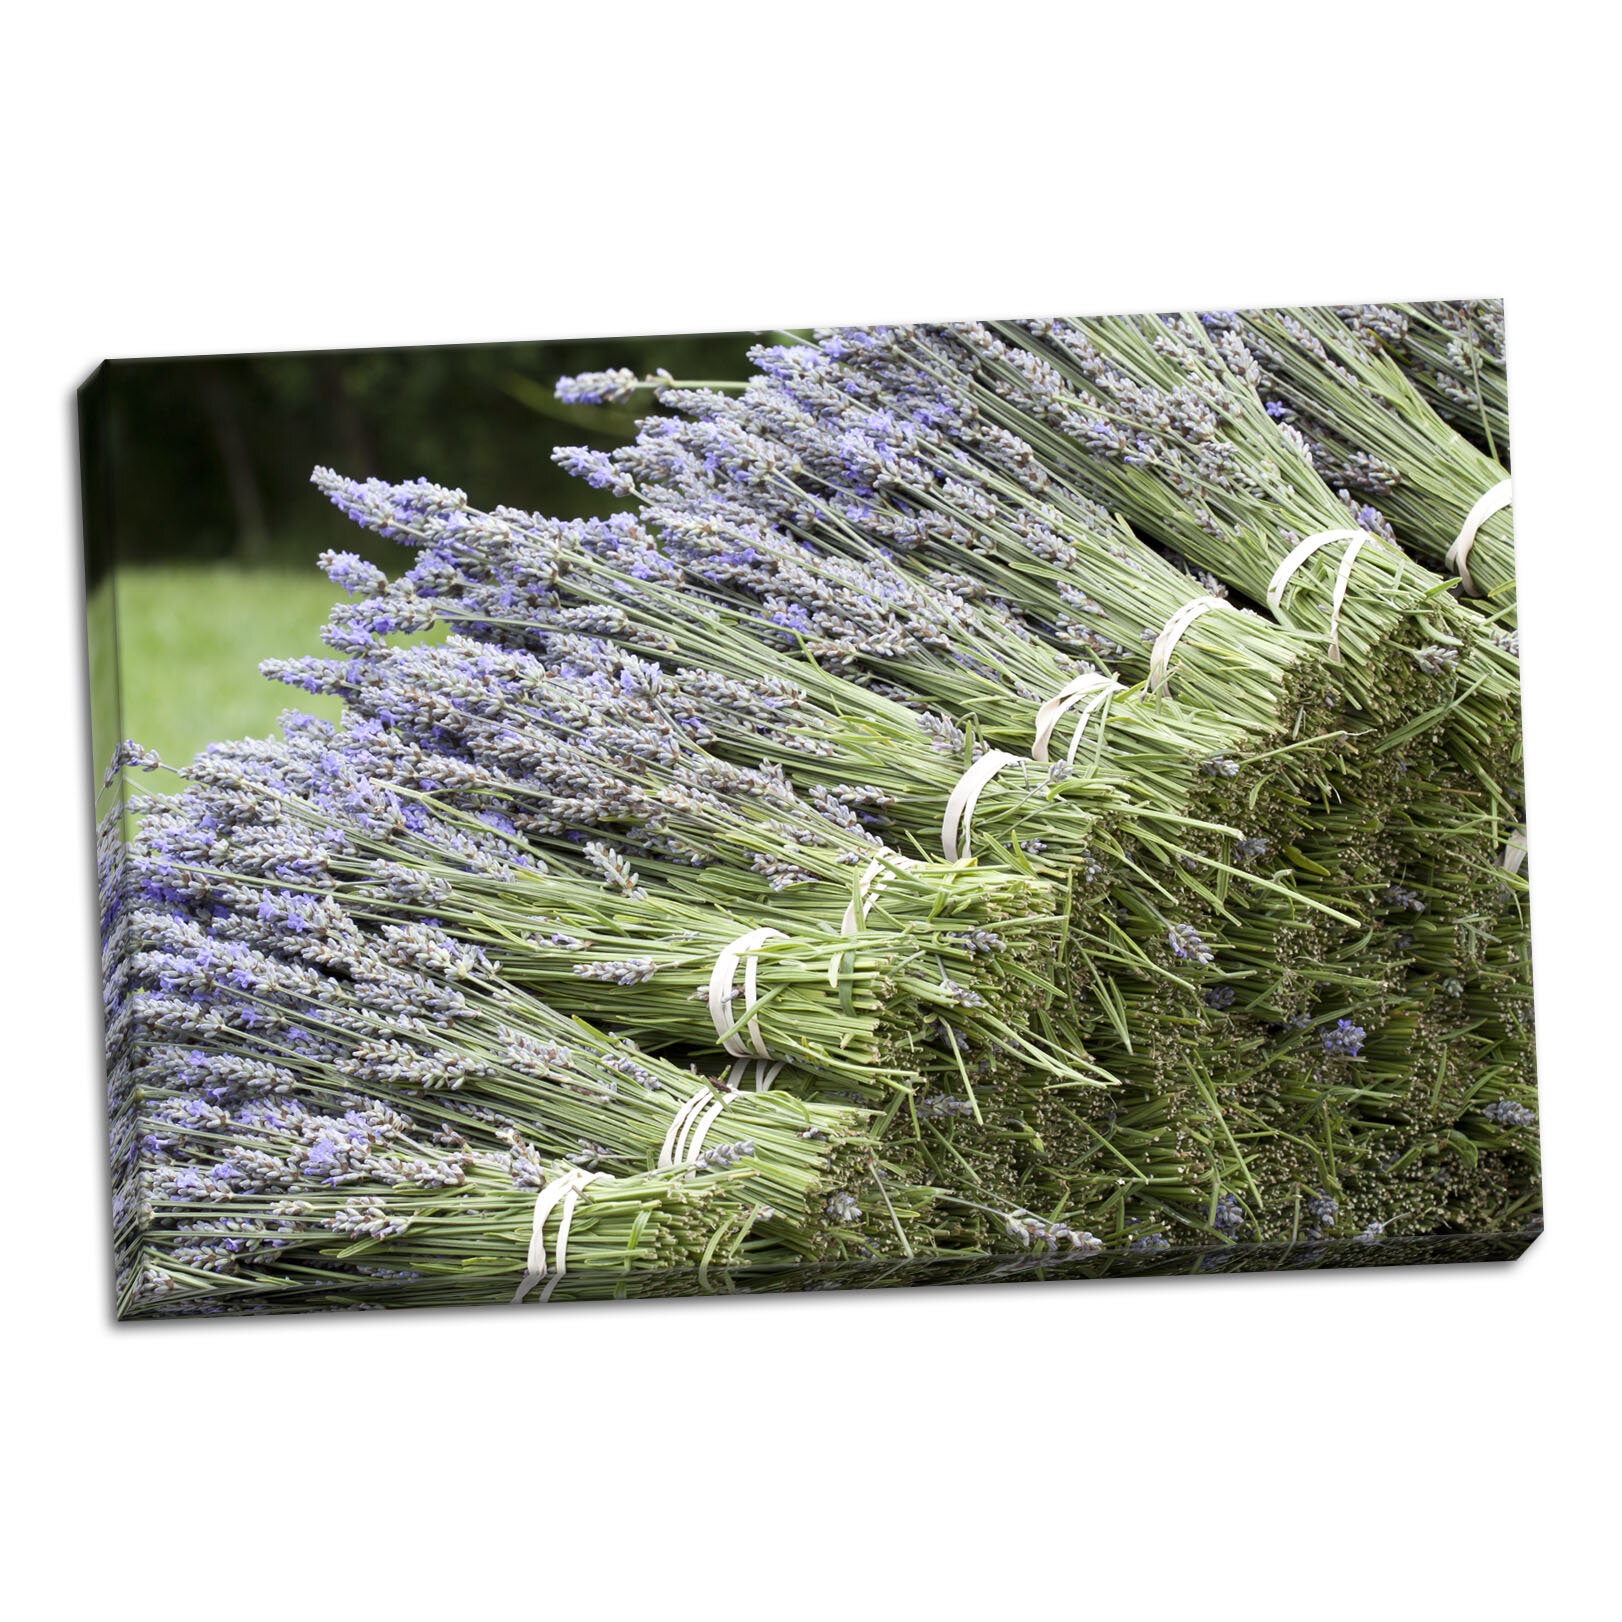 Ophelia Co Lavender Bunches Ii Photographic Print On Wrapped Canvas Wayfair